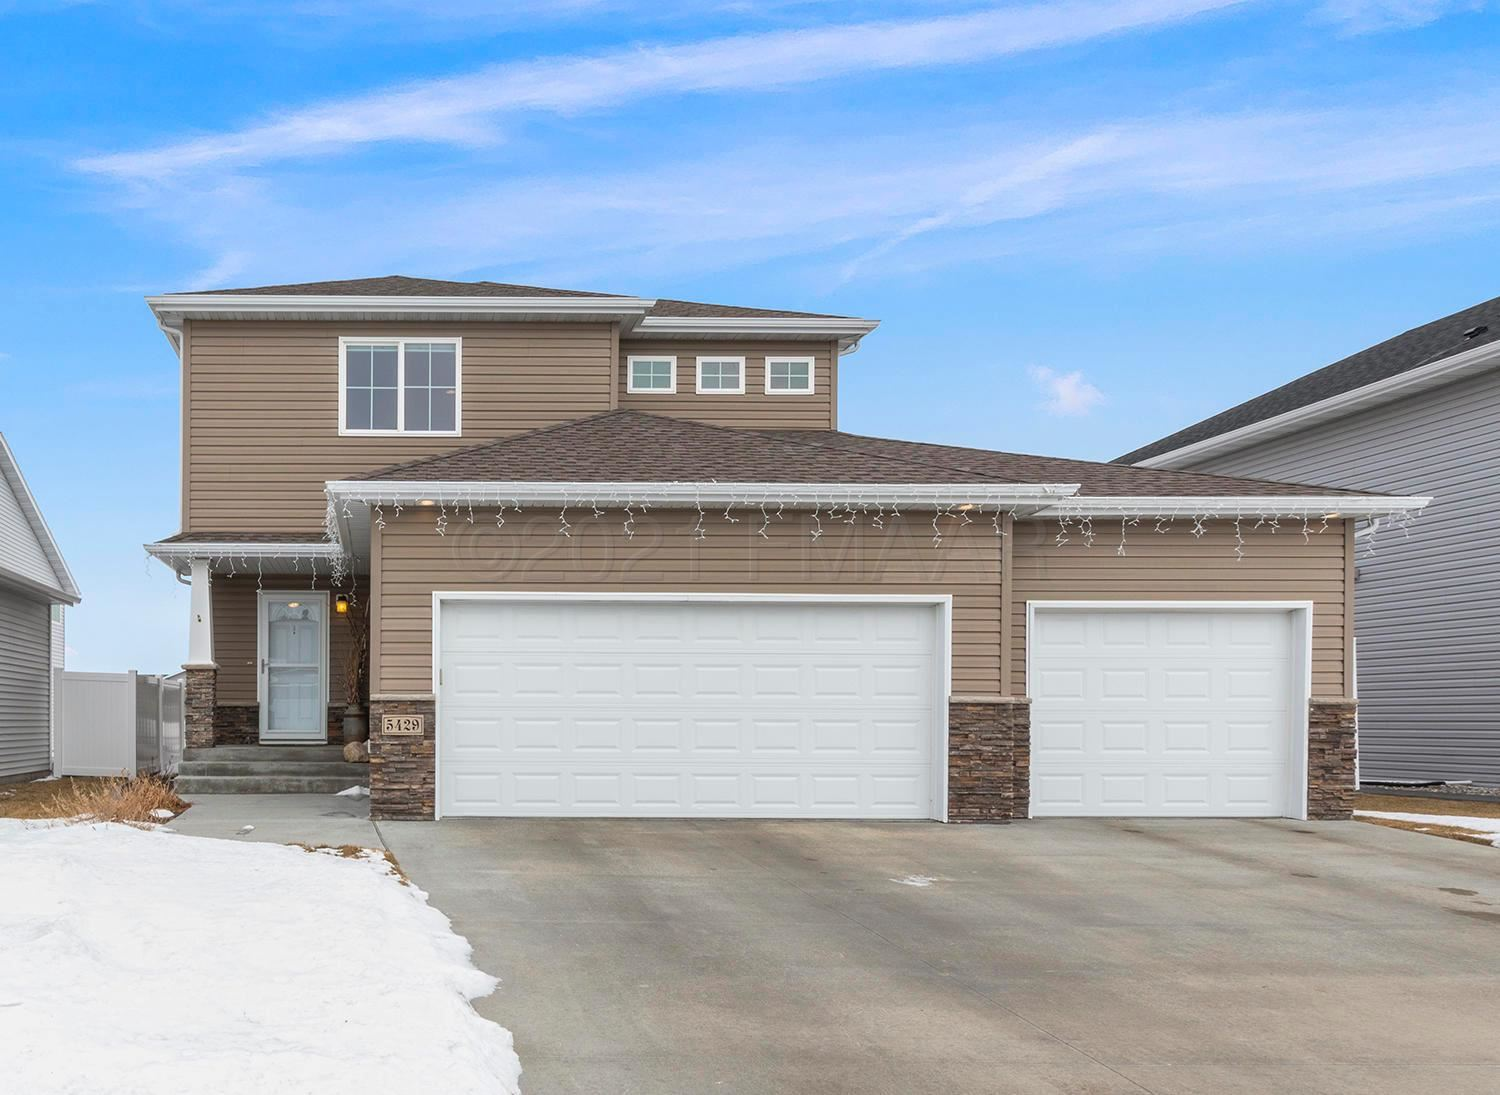 5429 JUSTICE Drive S, Fargo, ND 58104 - #: 21-441